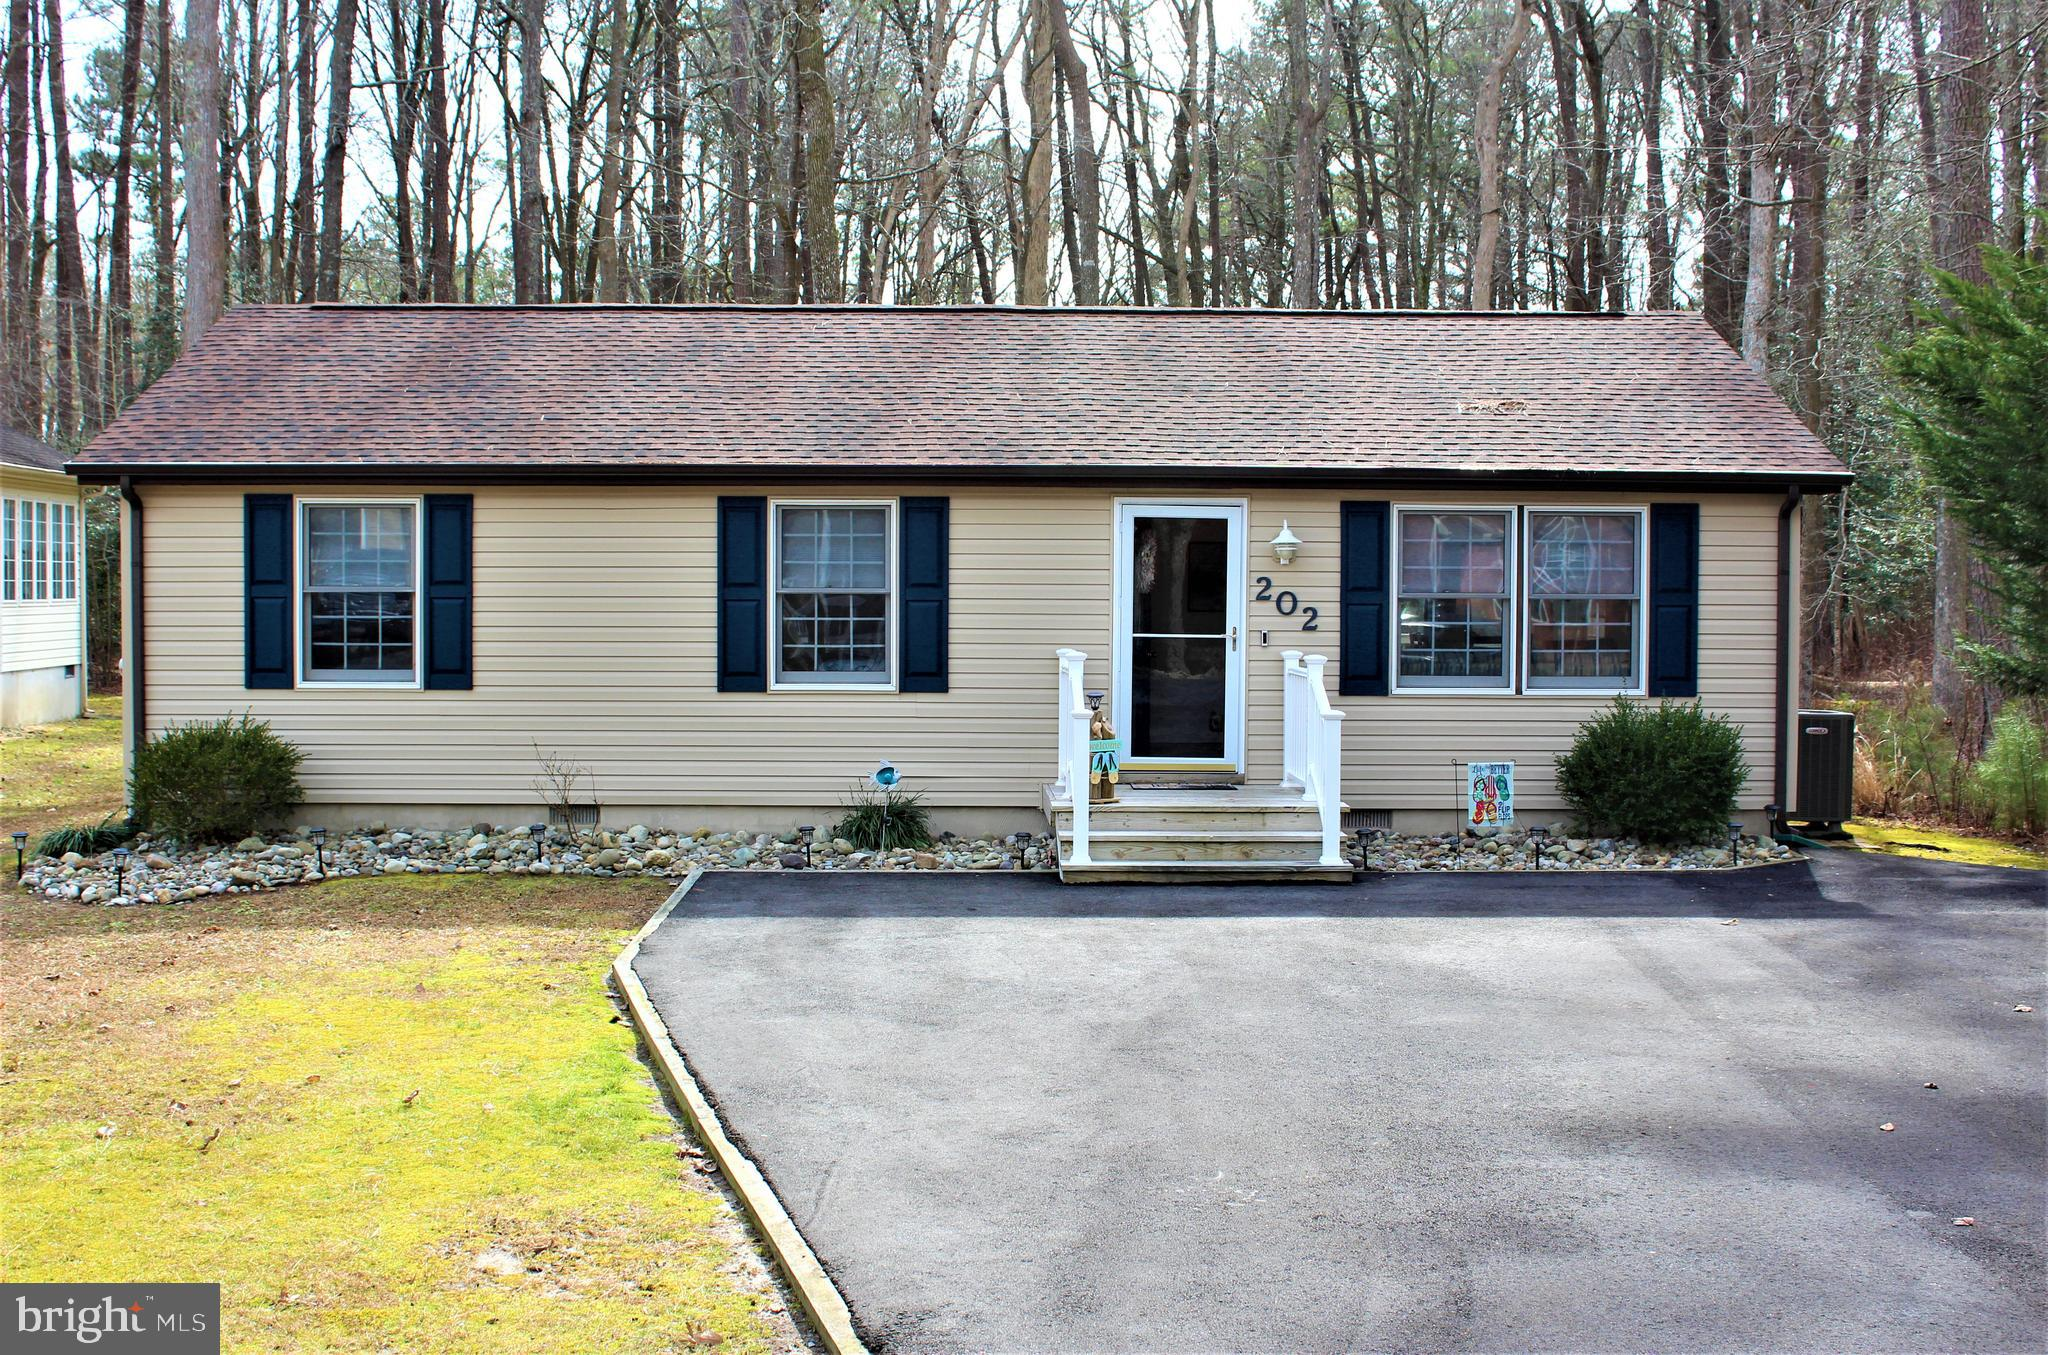 Coastal contemporary completely remodeled 3BR home nestled in Ocean Pines only minutes from the beac